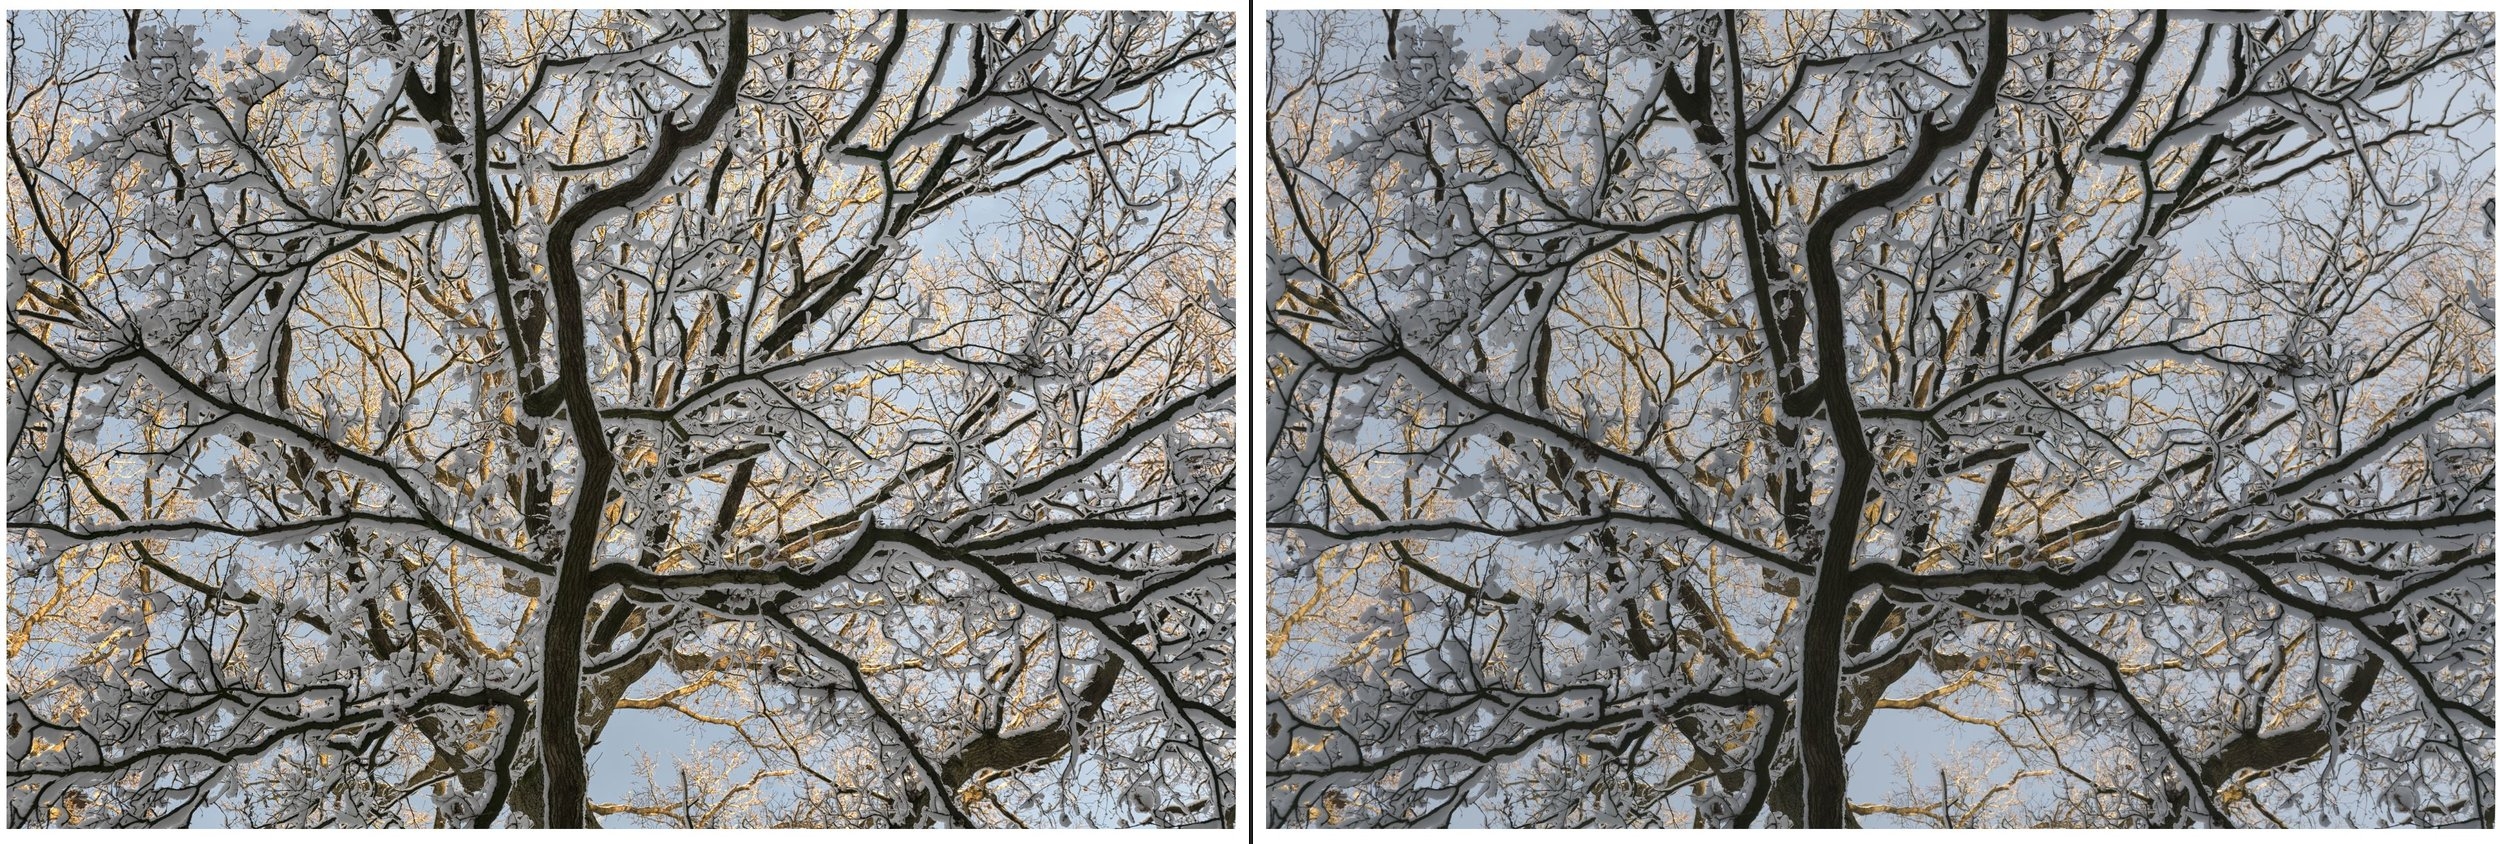 RAW on left, processed on right